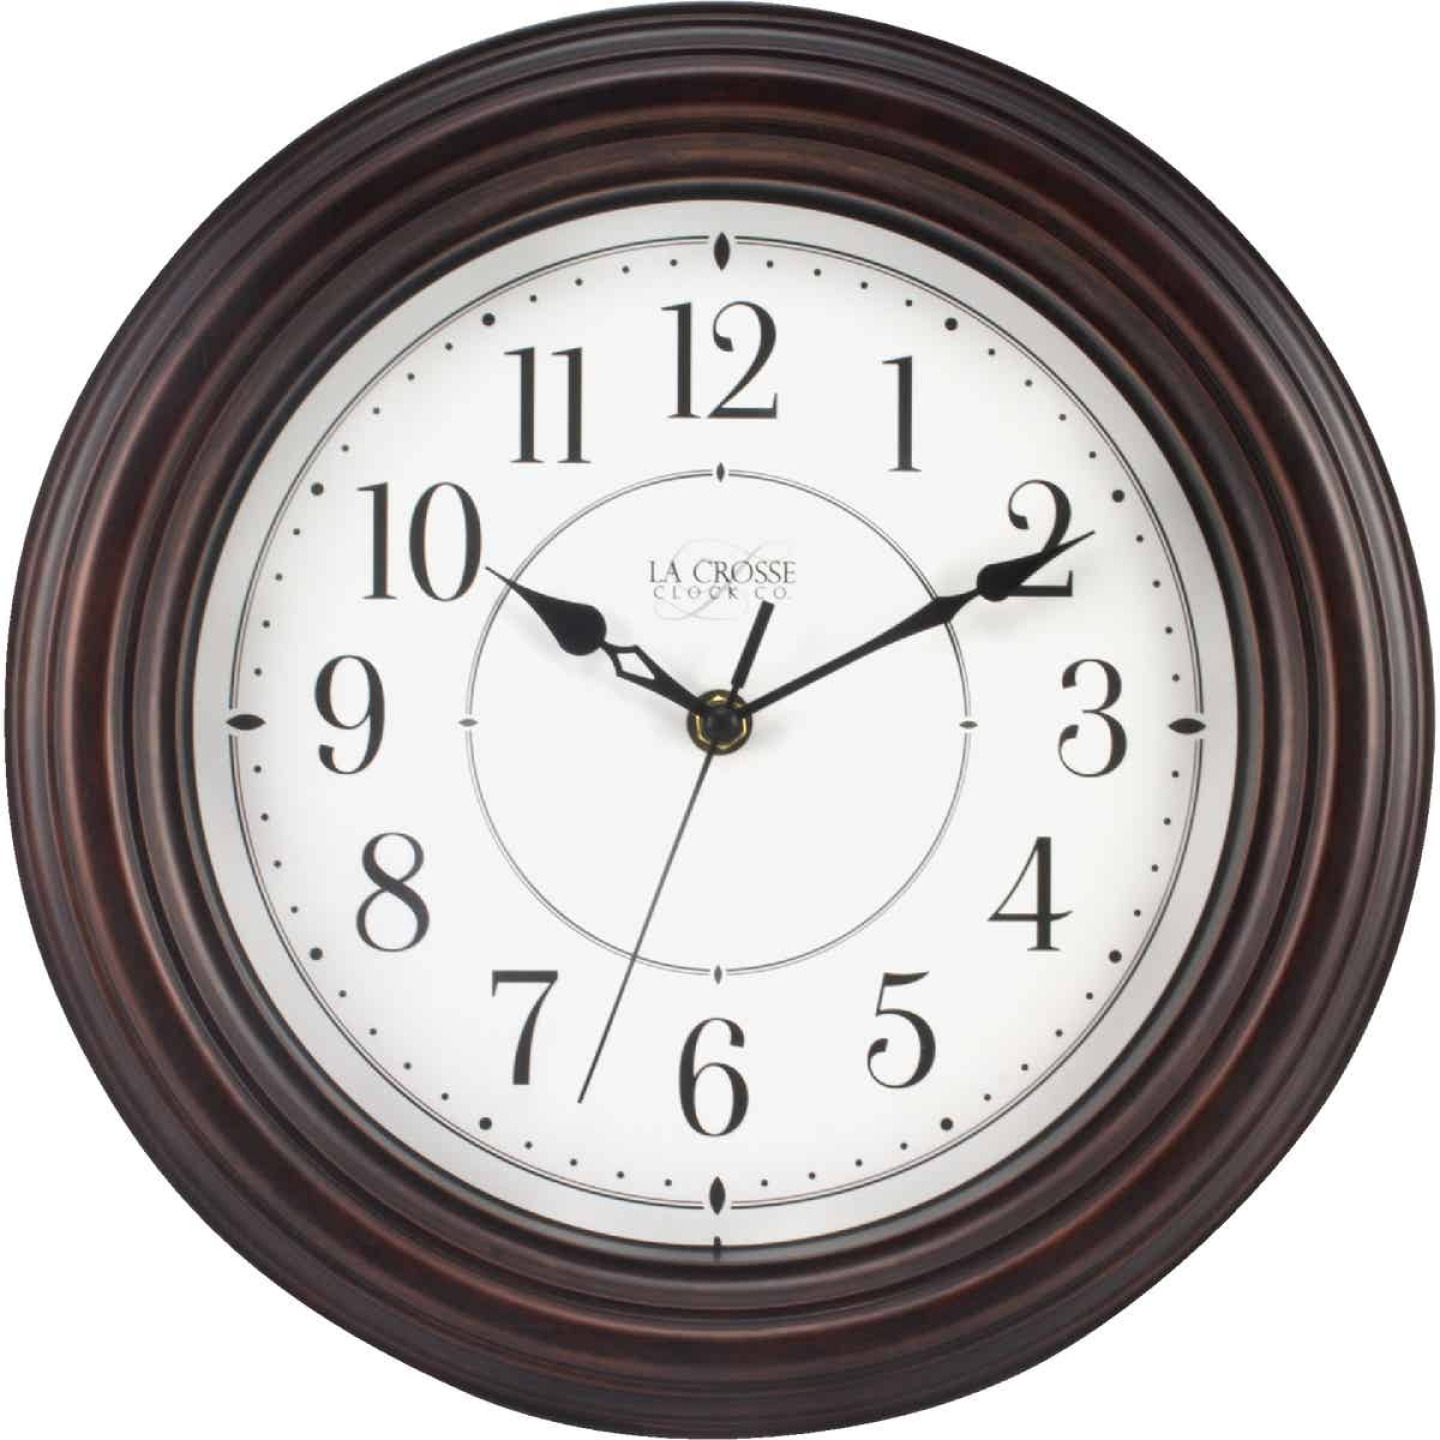 La Crosse Clock Silent Sweep Wall Clock Image 1